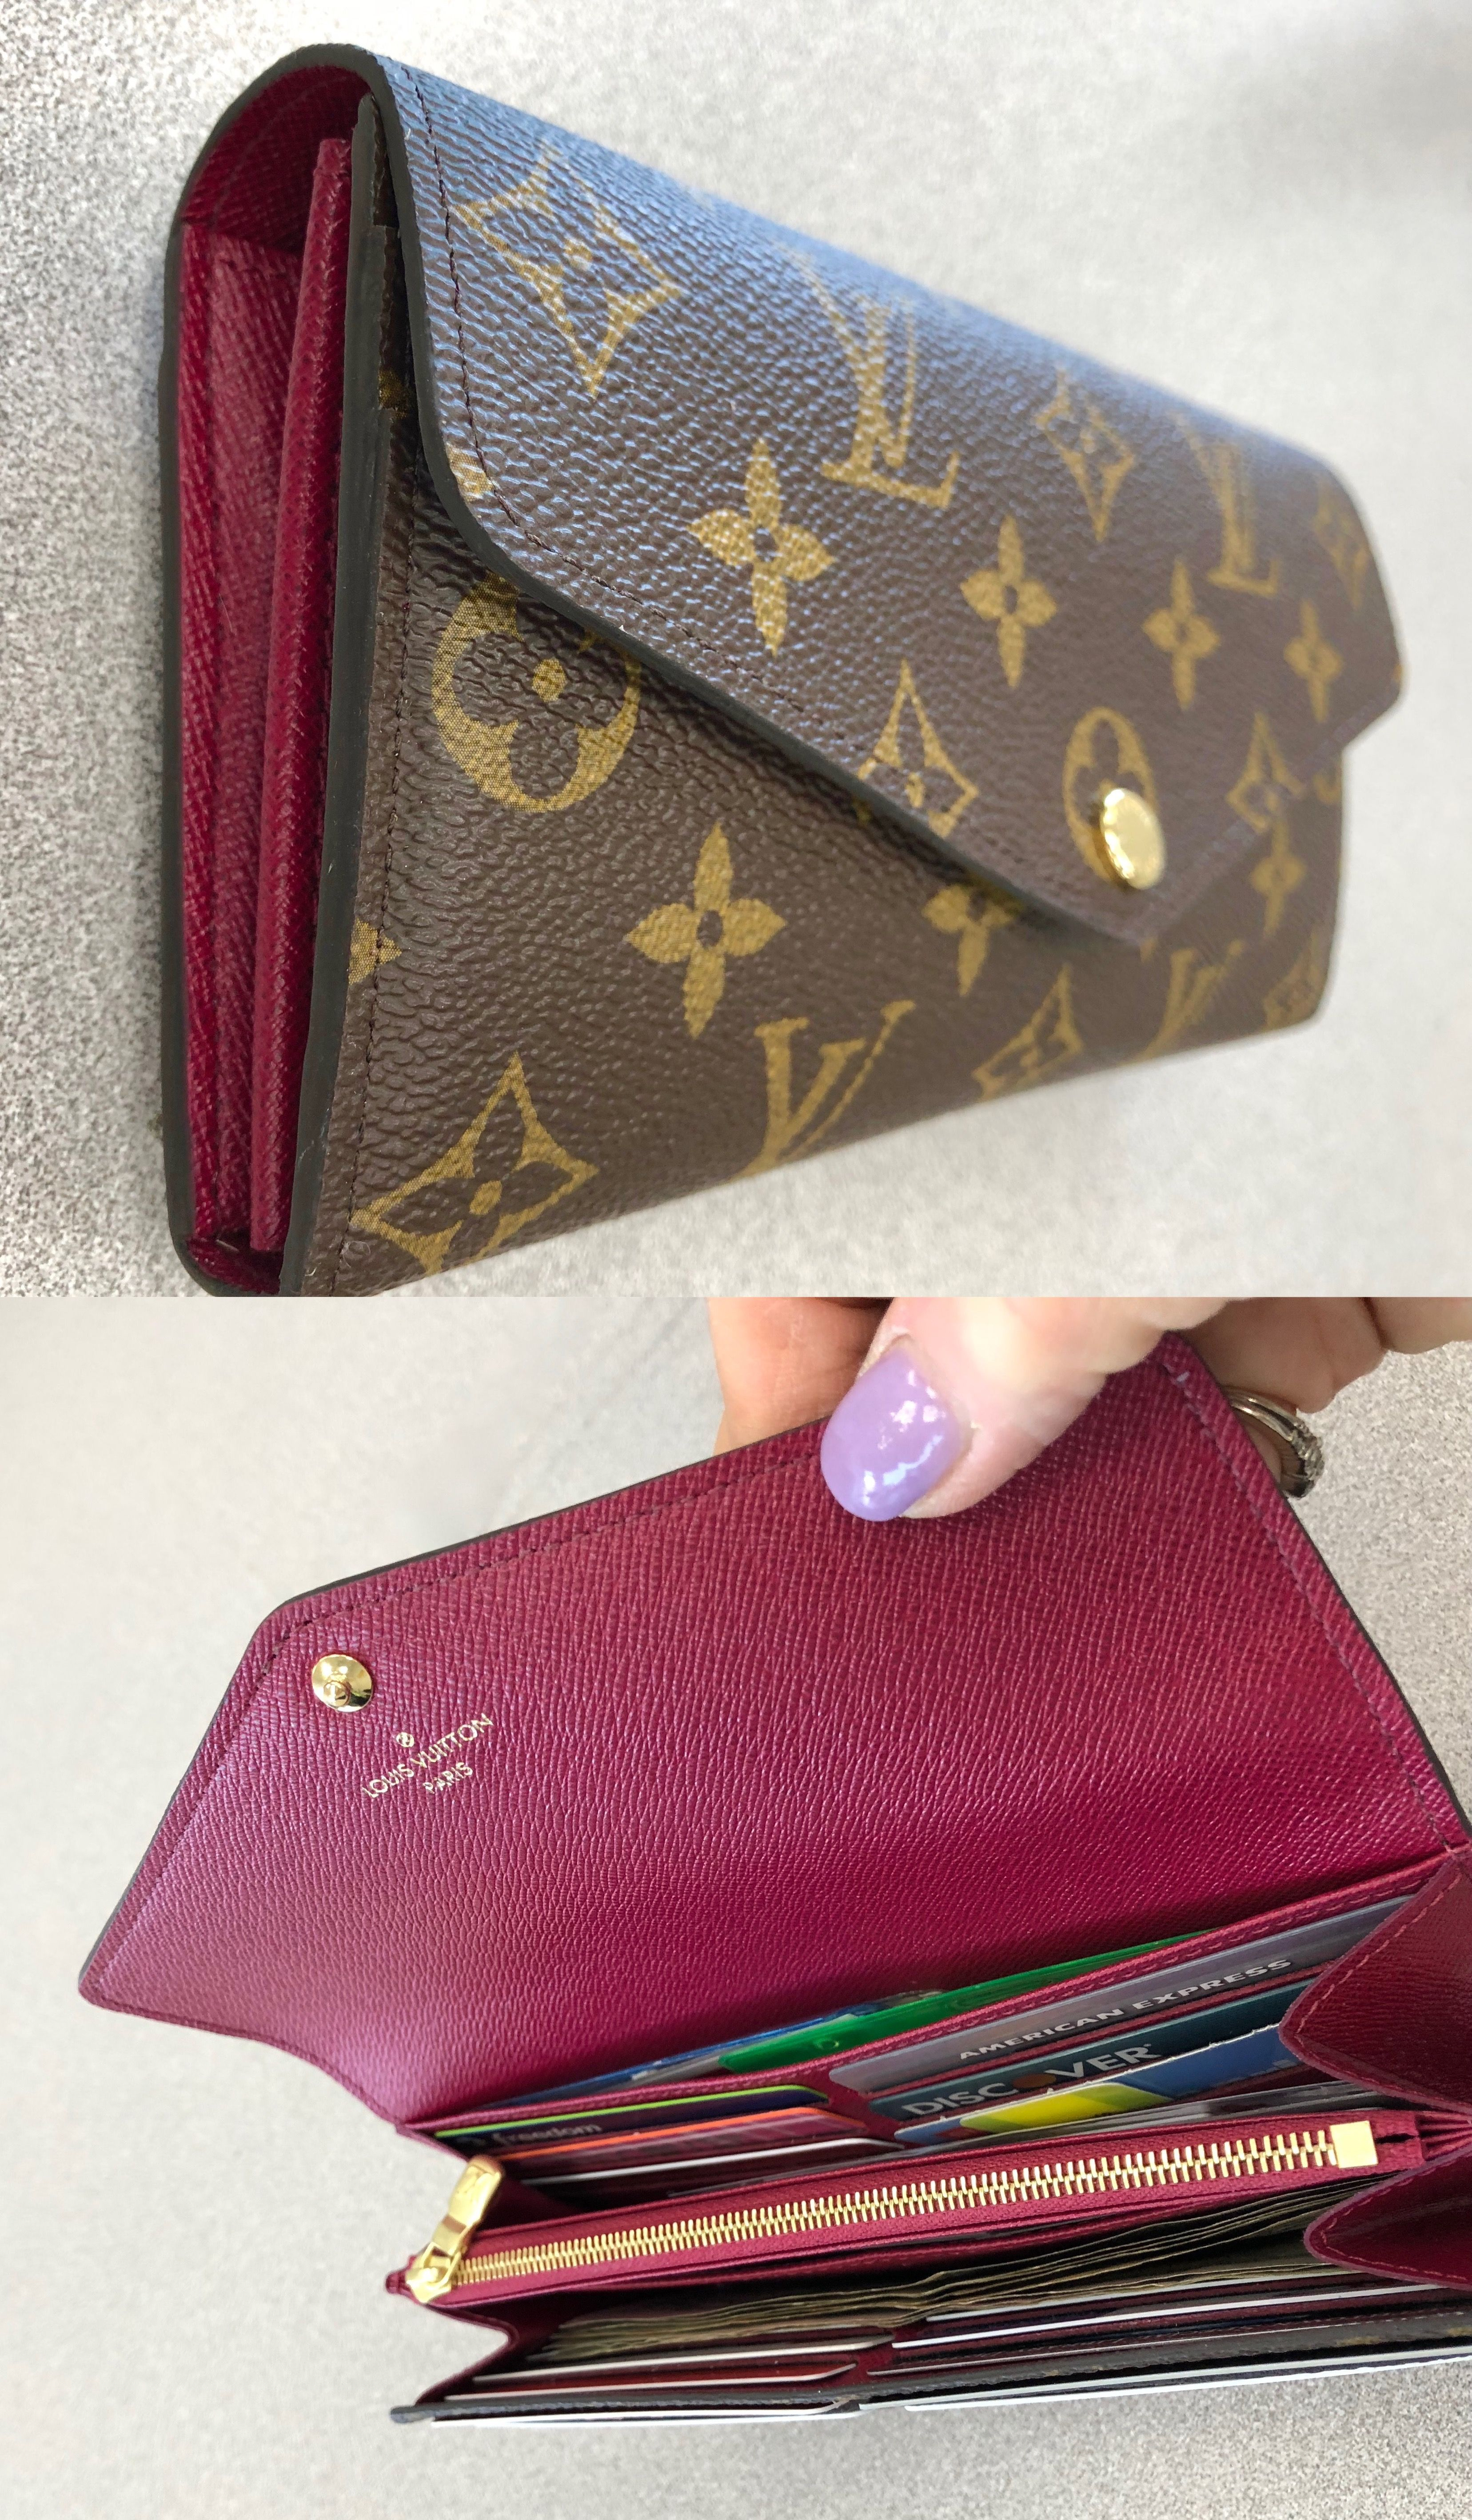 4e696528f5ee4 Louis Vuitton Sarah Wallet in Monogram and Fuchsia. LOVE how neat and  organized this wallet is! There are 16 credit card slots